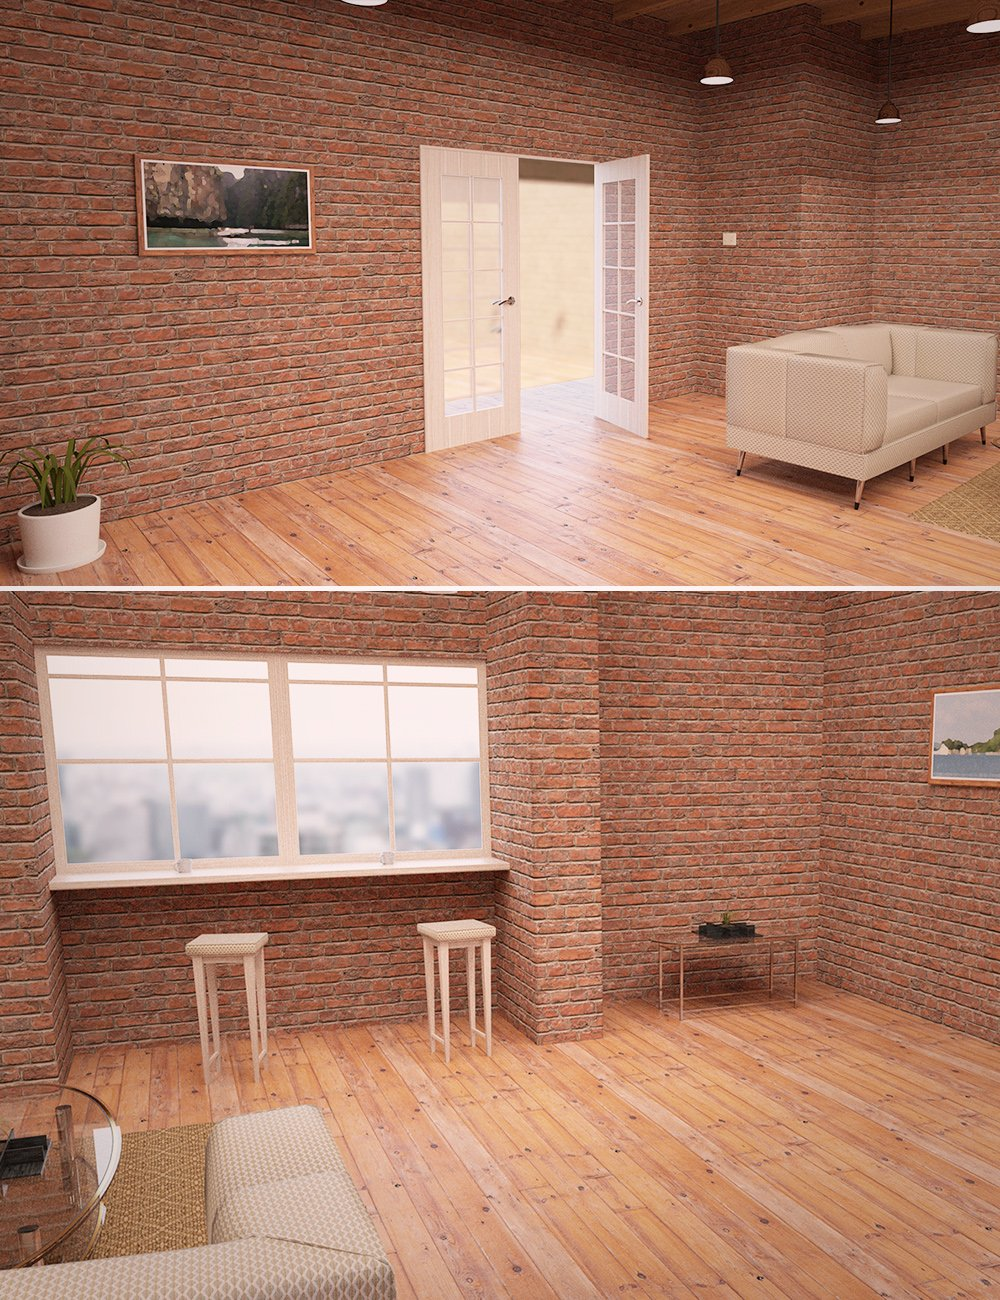 The Cozy Room by: , 3D Models by Daz 3D